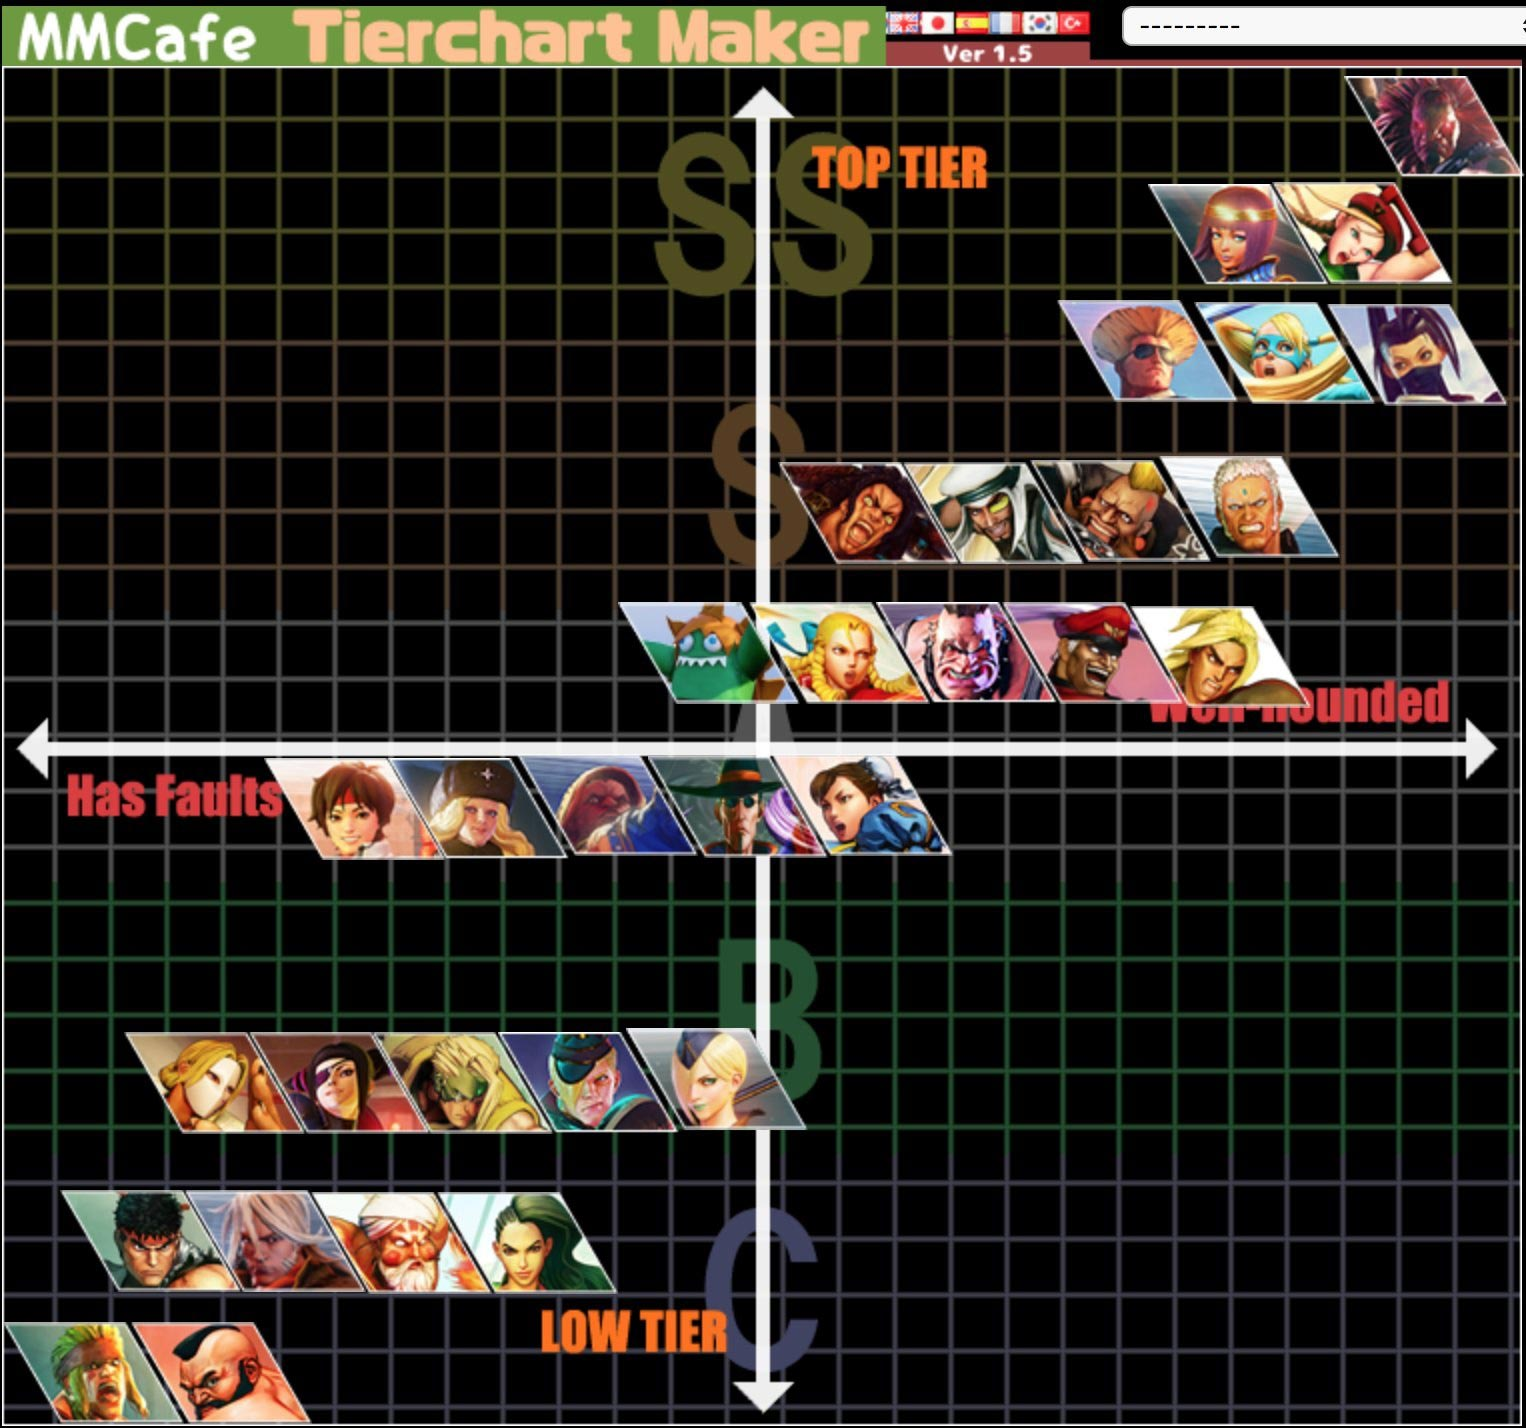 Flash S Street Fighter 5 Season 3 Tier List 1 Out Of 1 Image Gallery